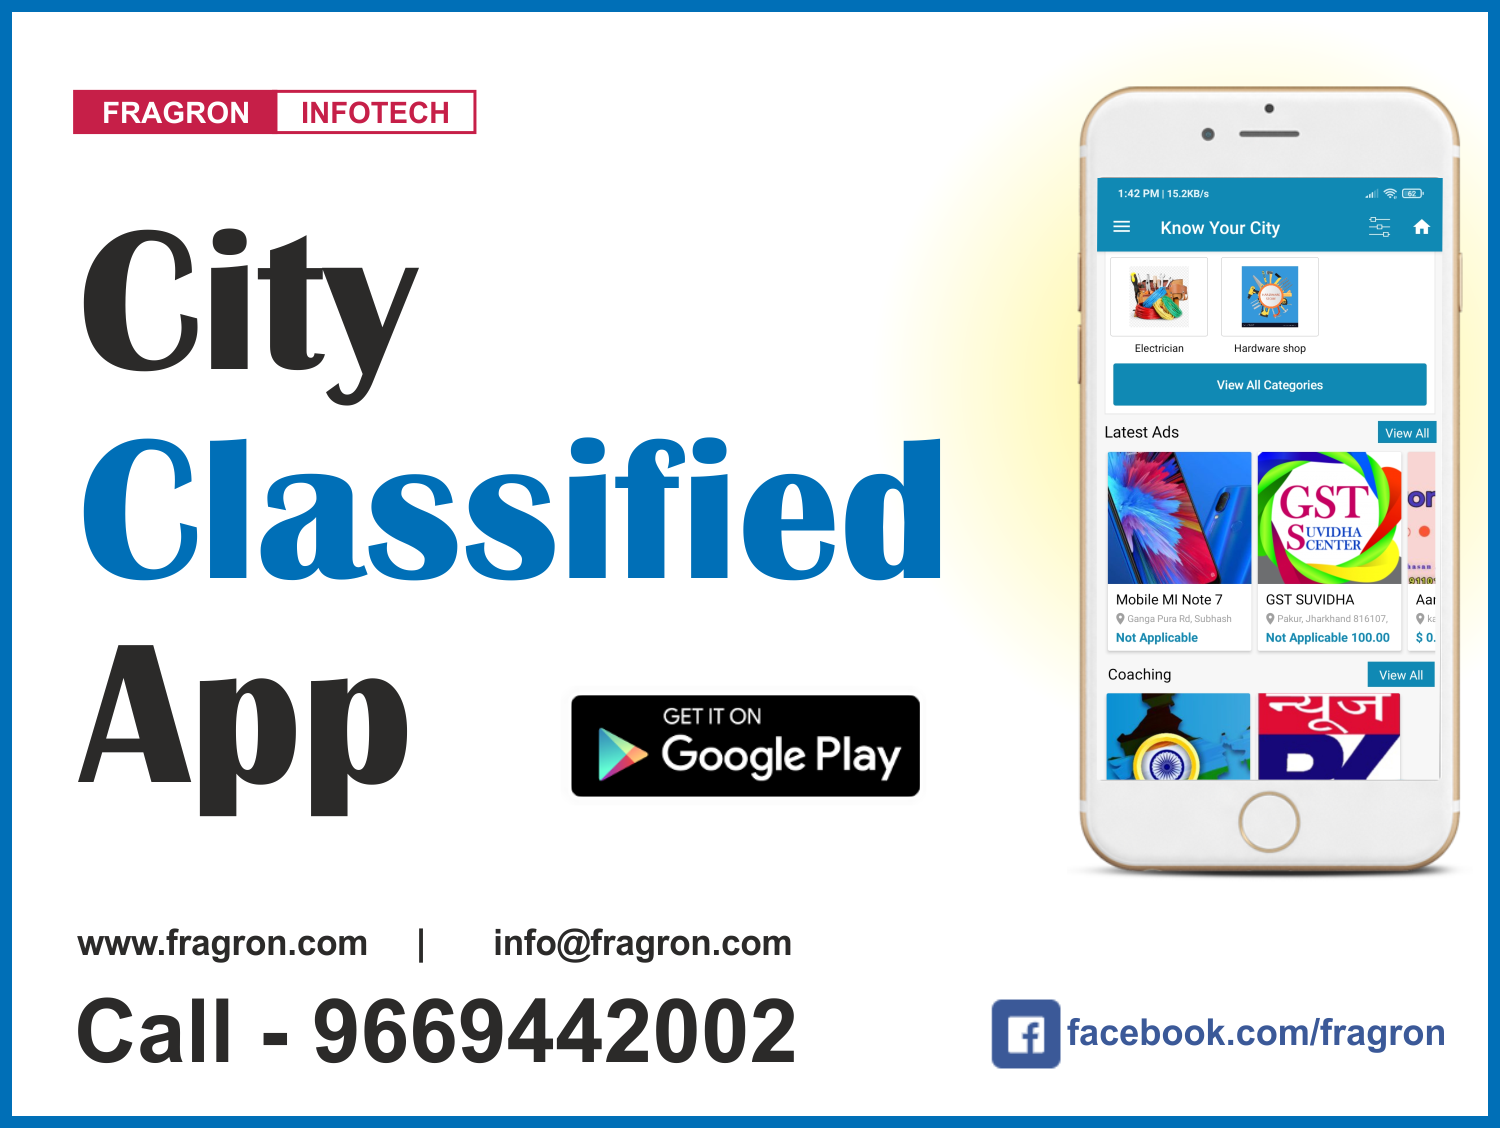 City Classified App Like Just Dial / OLX